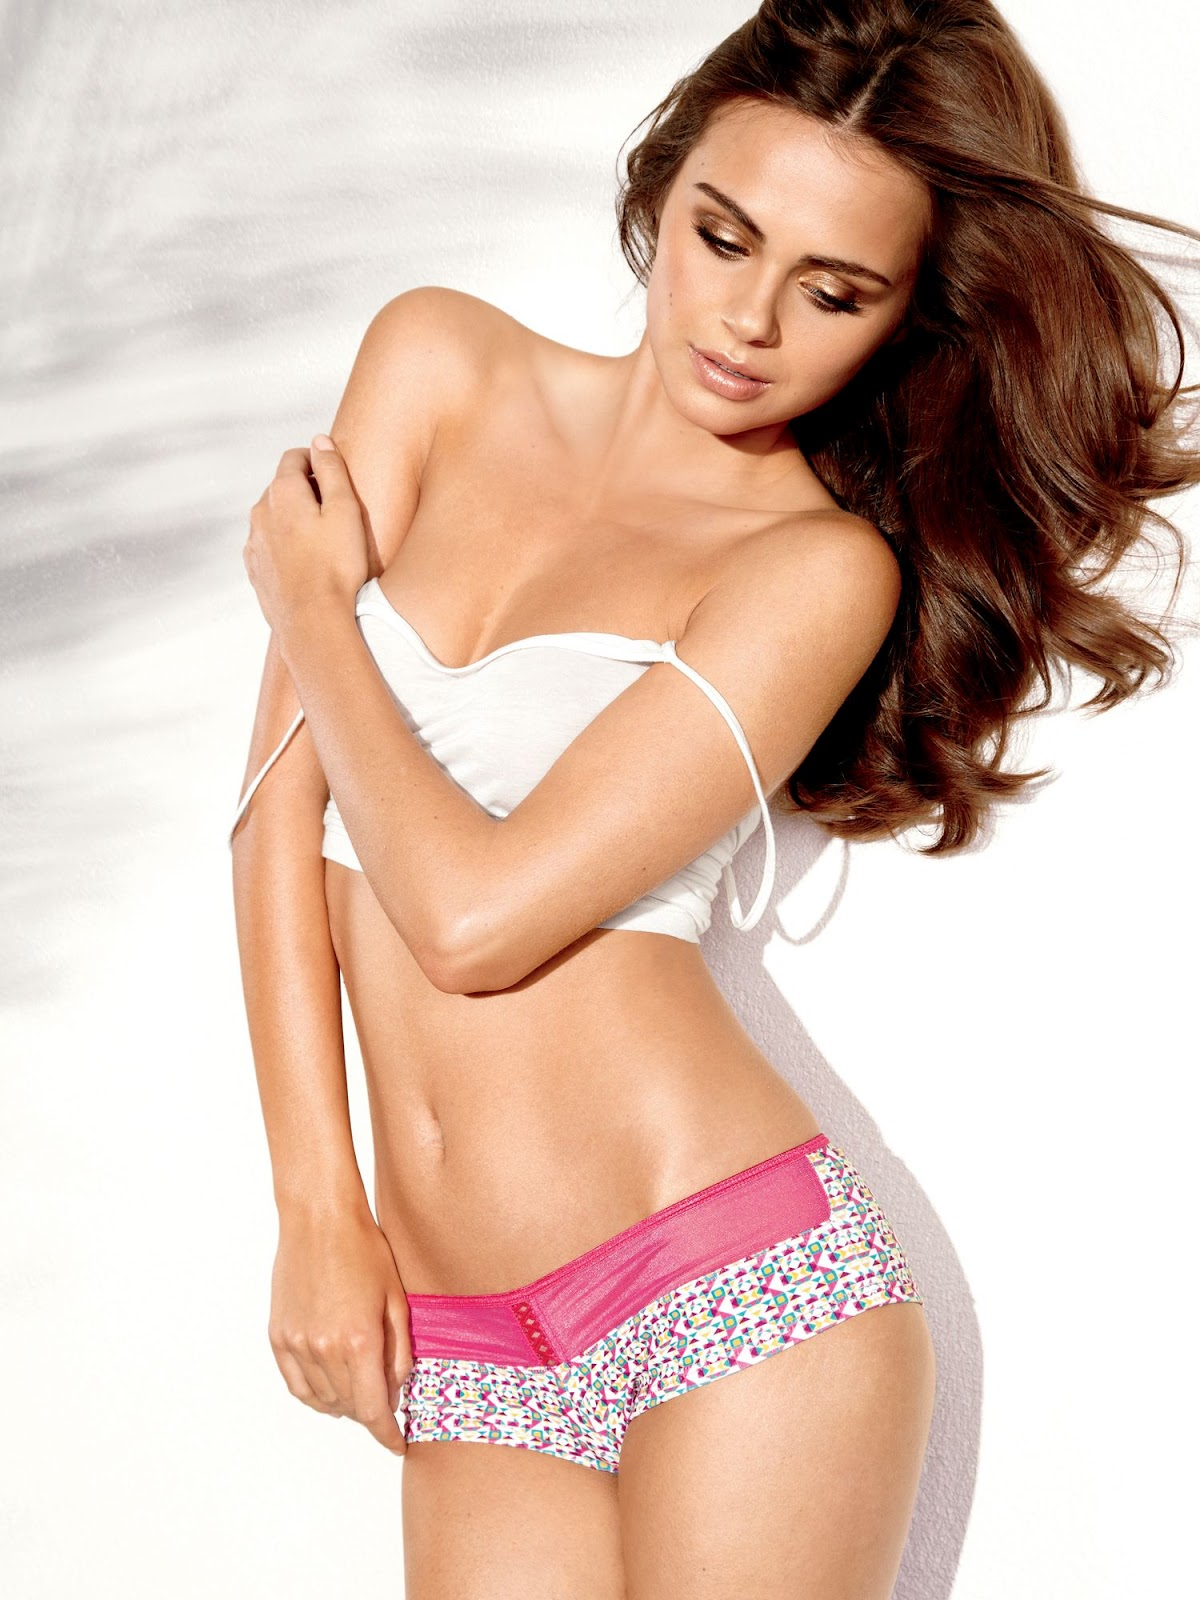 Xenia Deli Fredericks of Hollywood Lingerie Hot and Very